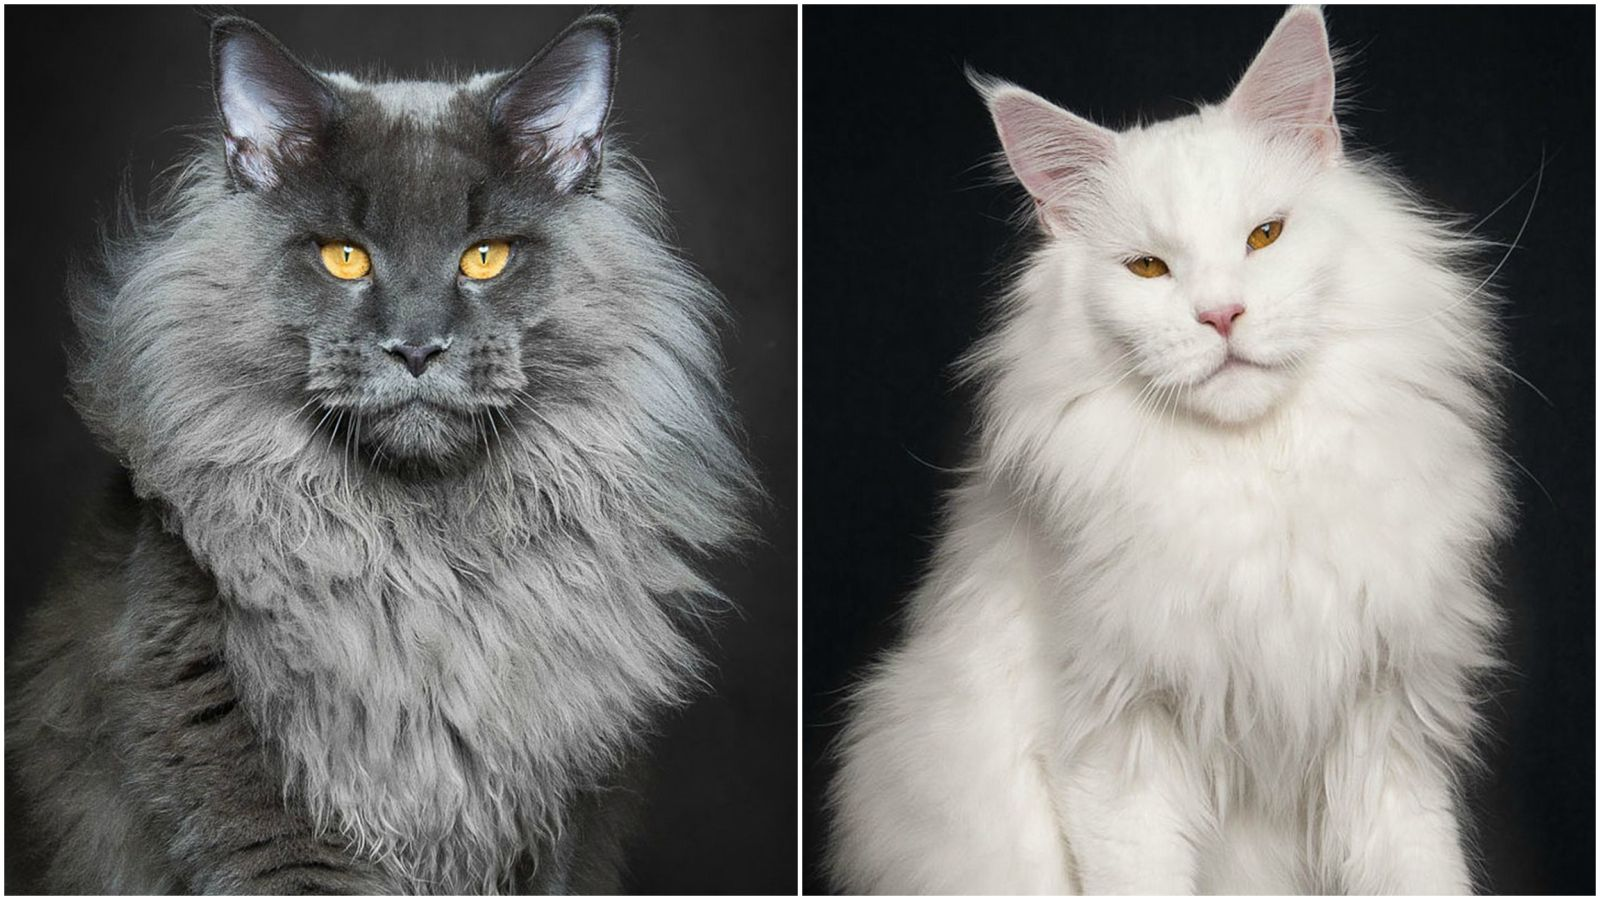 67 Amazing Pictures of Maine Coon Cats by Photographer Robert Sijka